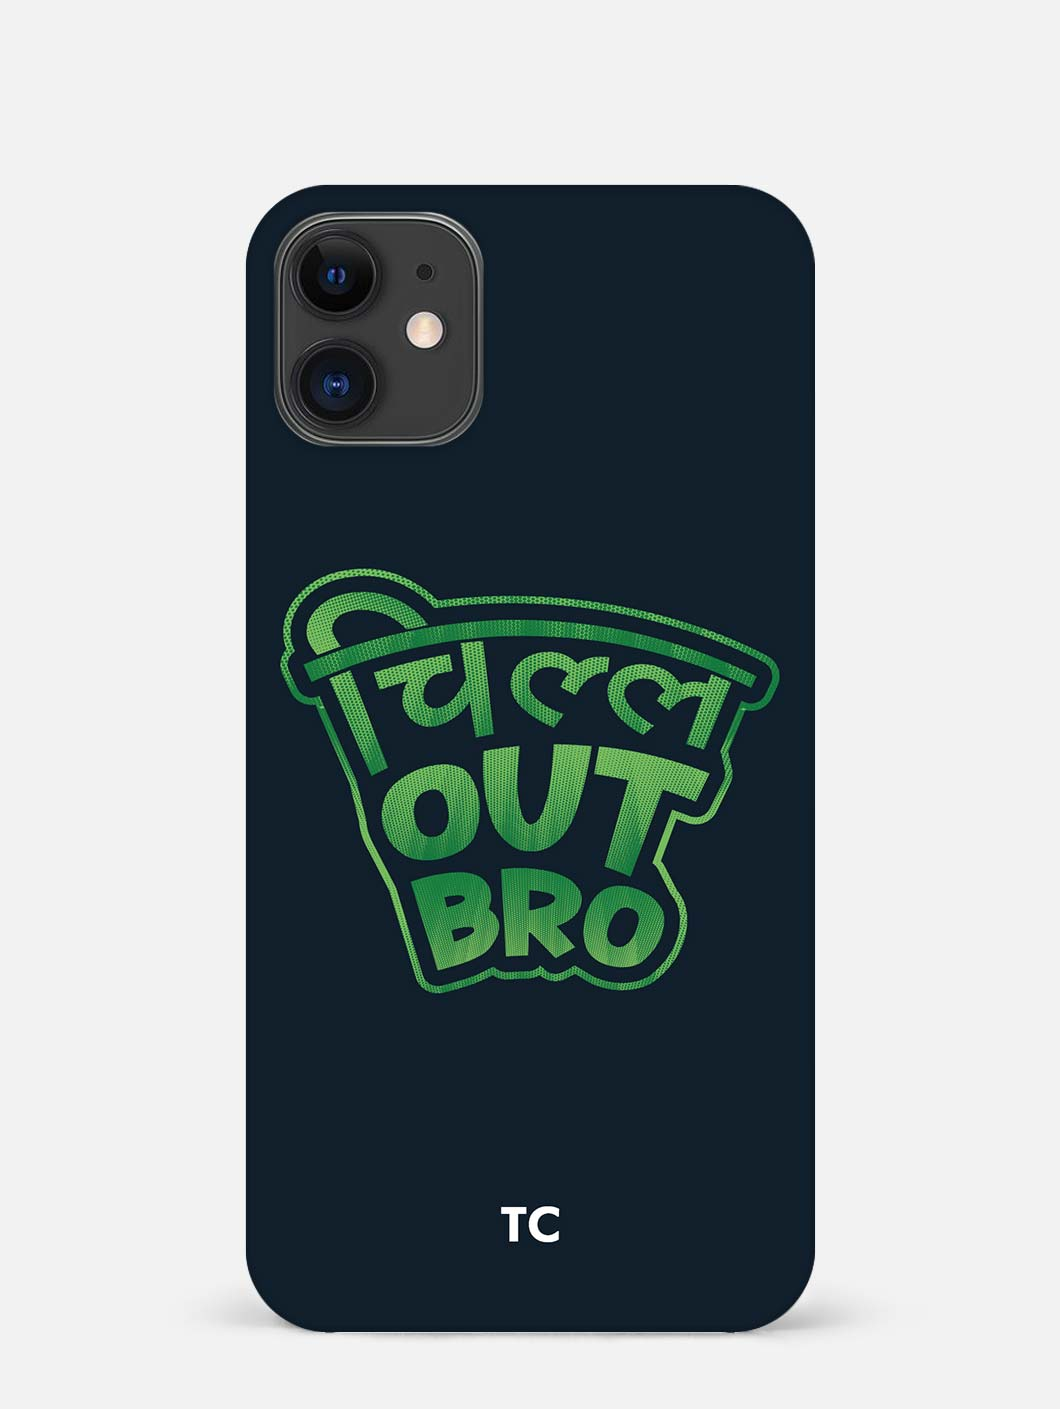 Chill Out Bro iPhone 12 Mini Mobile Cover